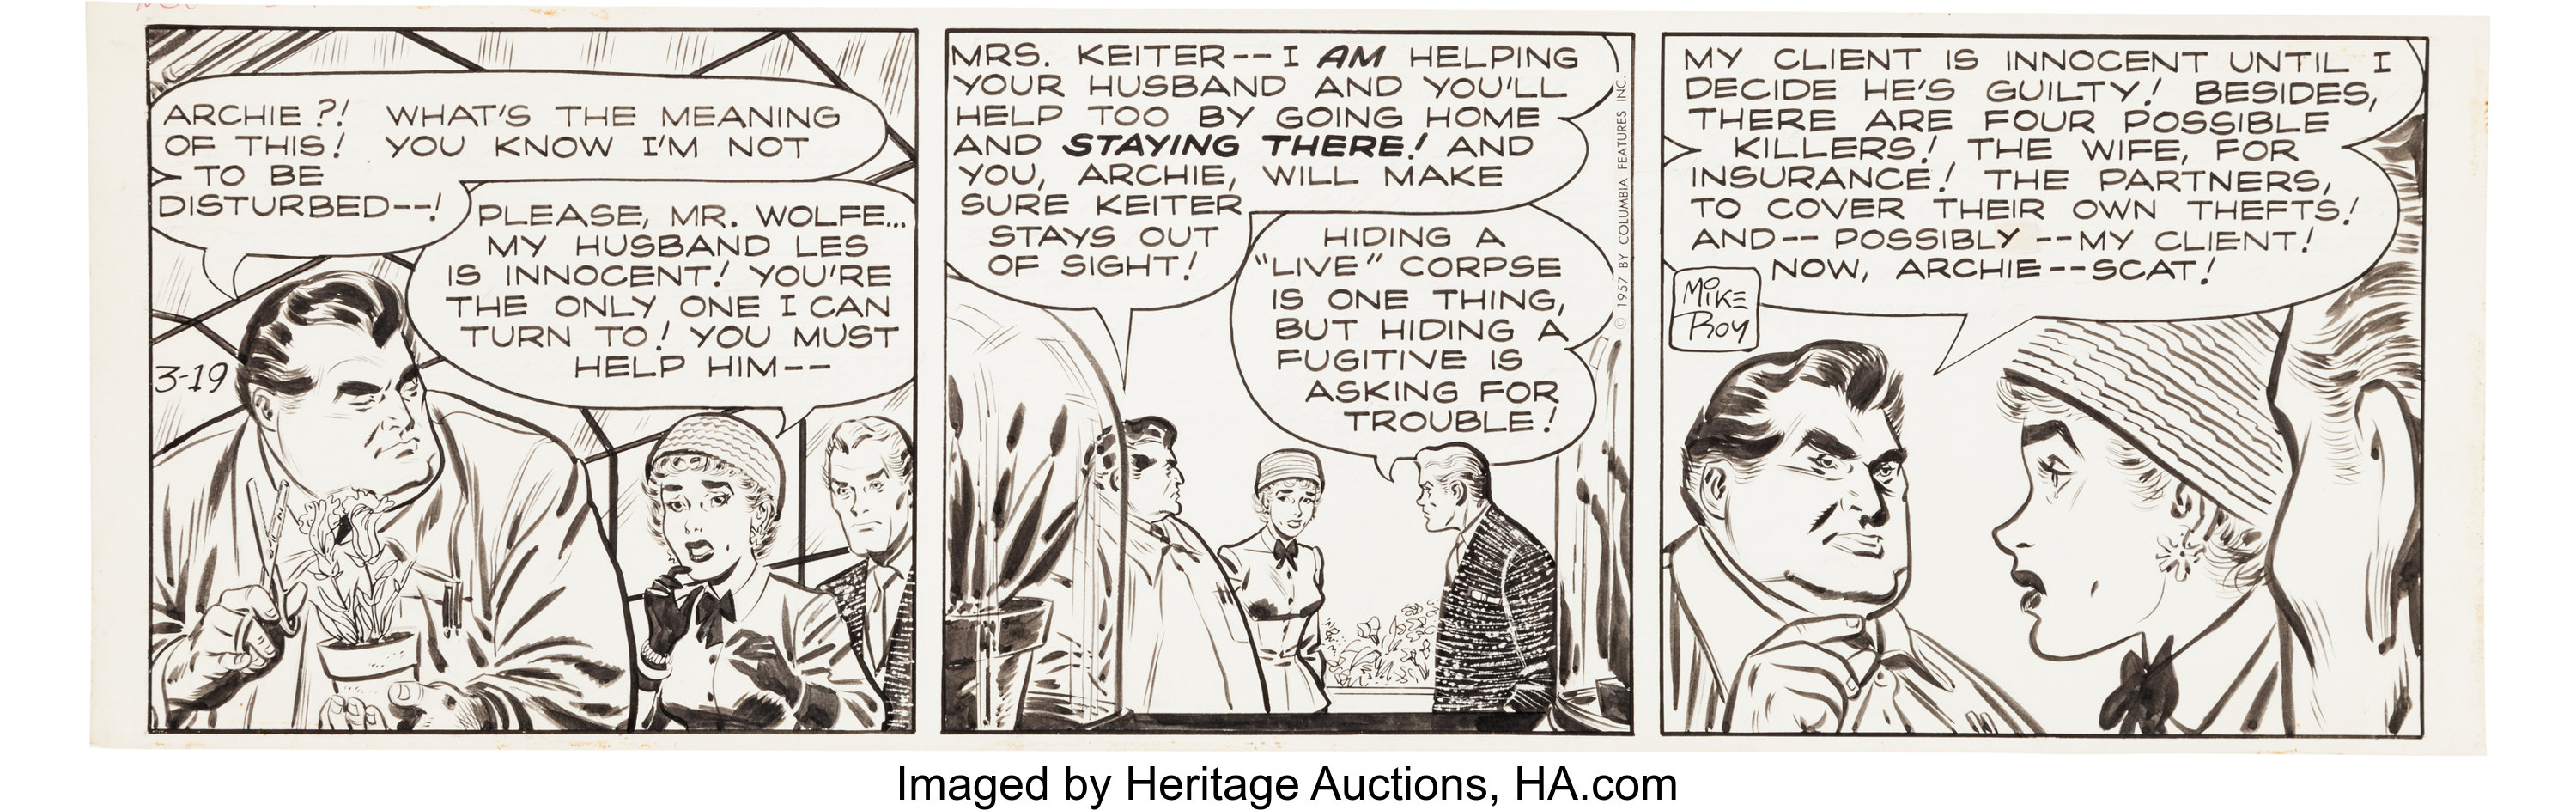 Mike Roy Nero Wolfe Daily Comic Strip Original Art dated 3